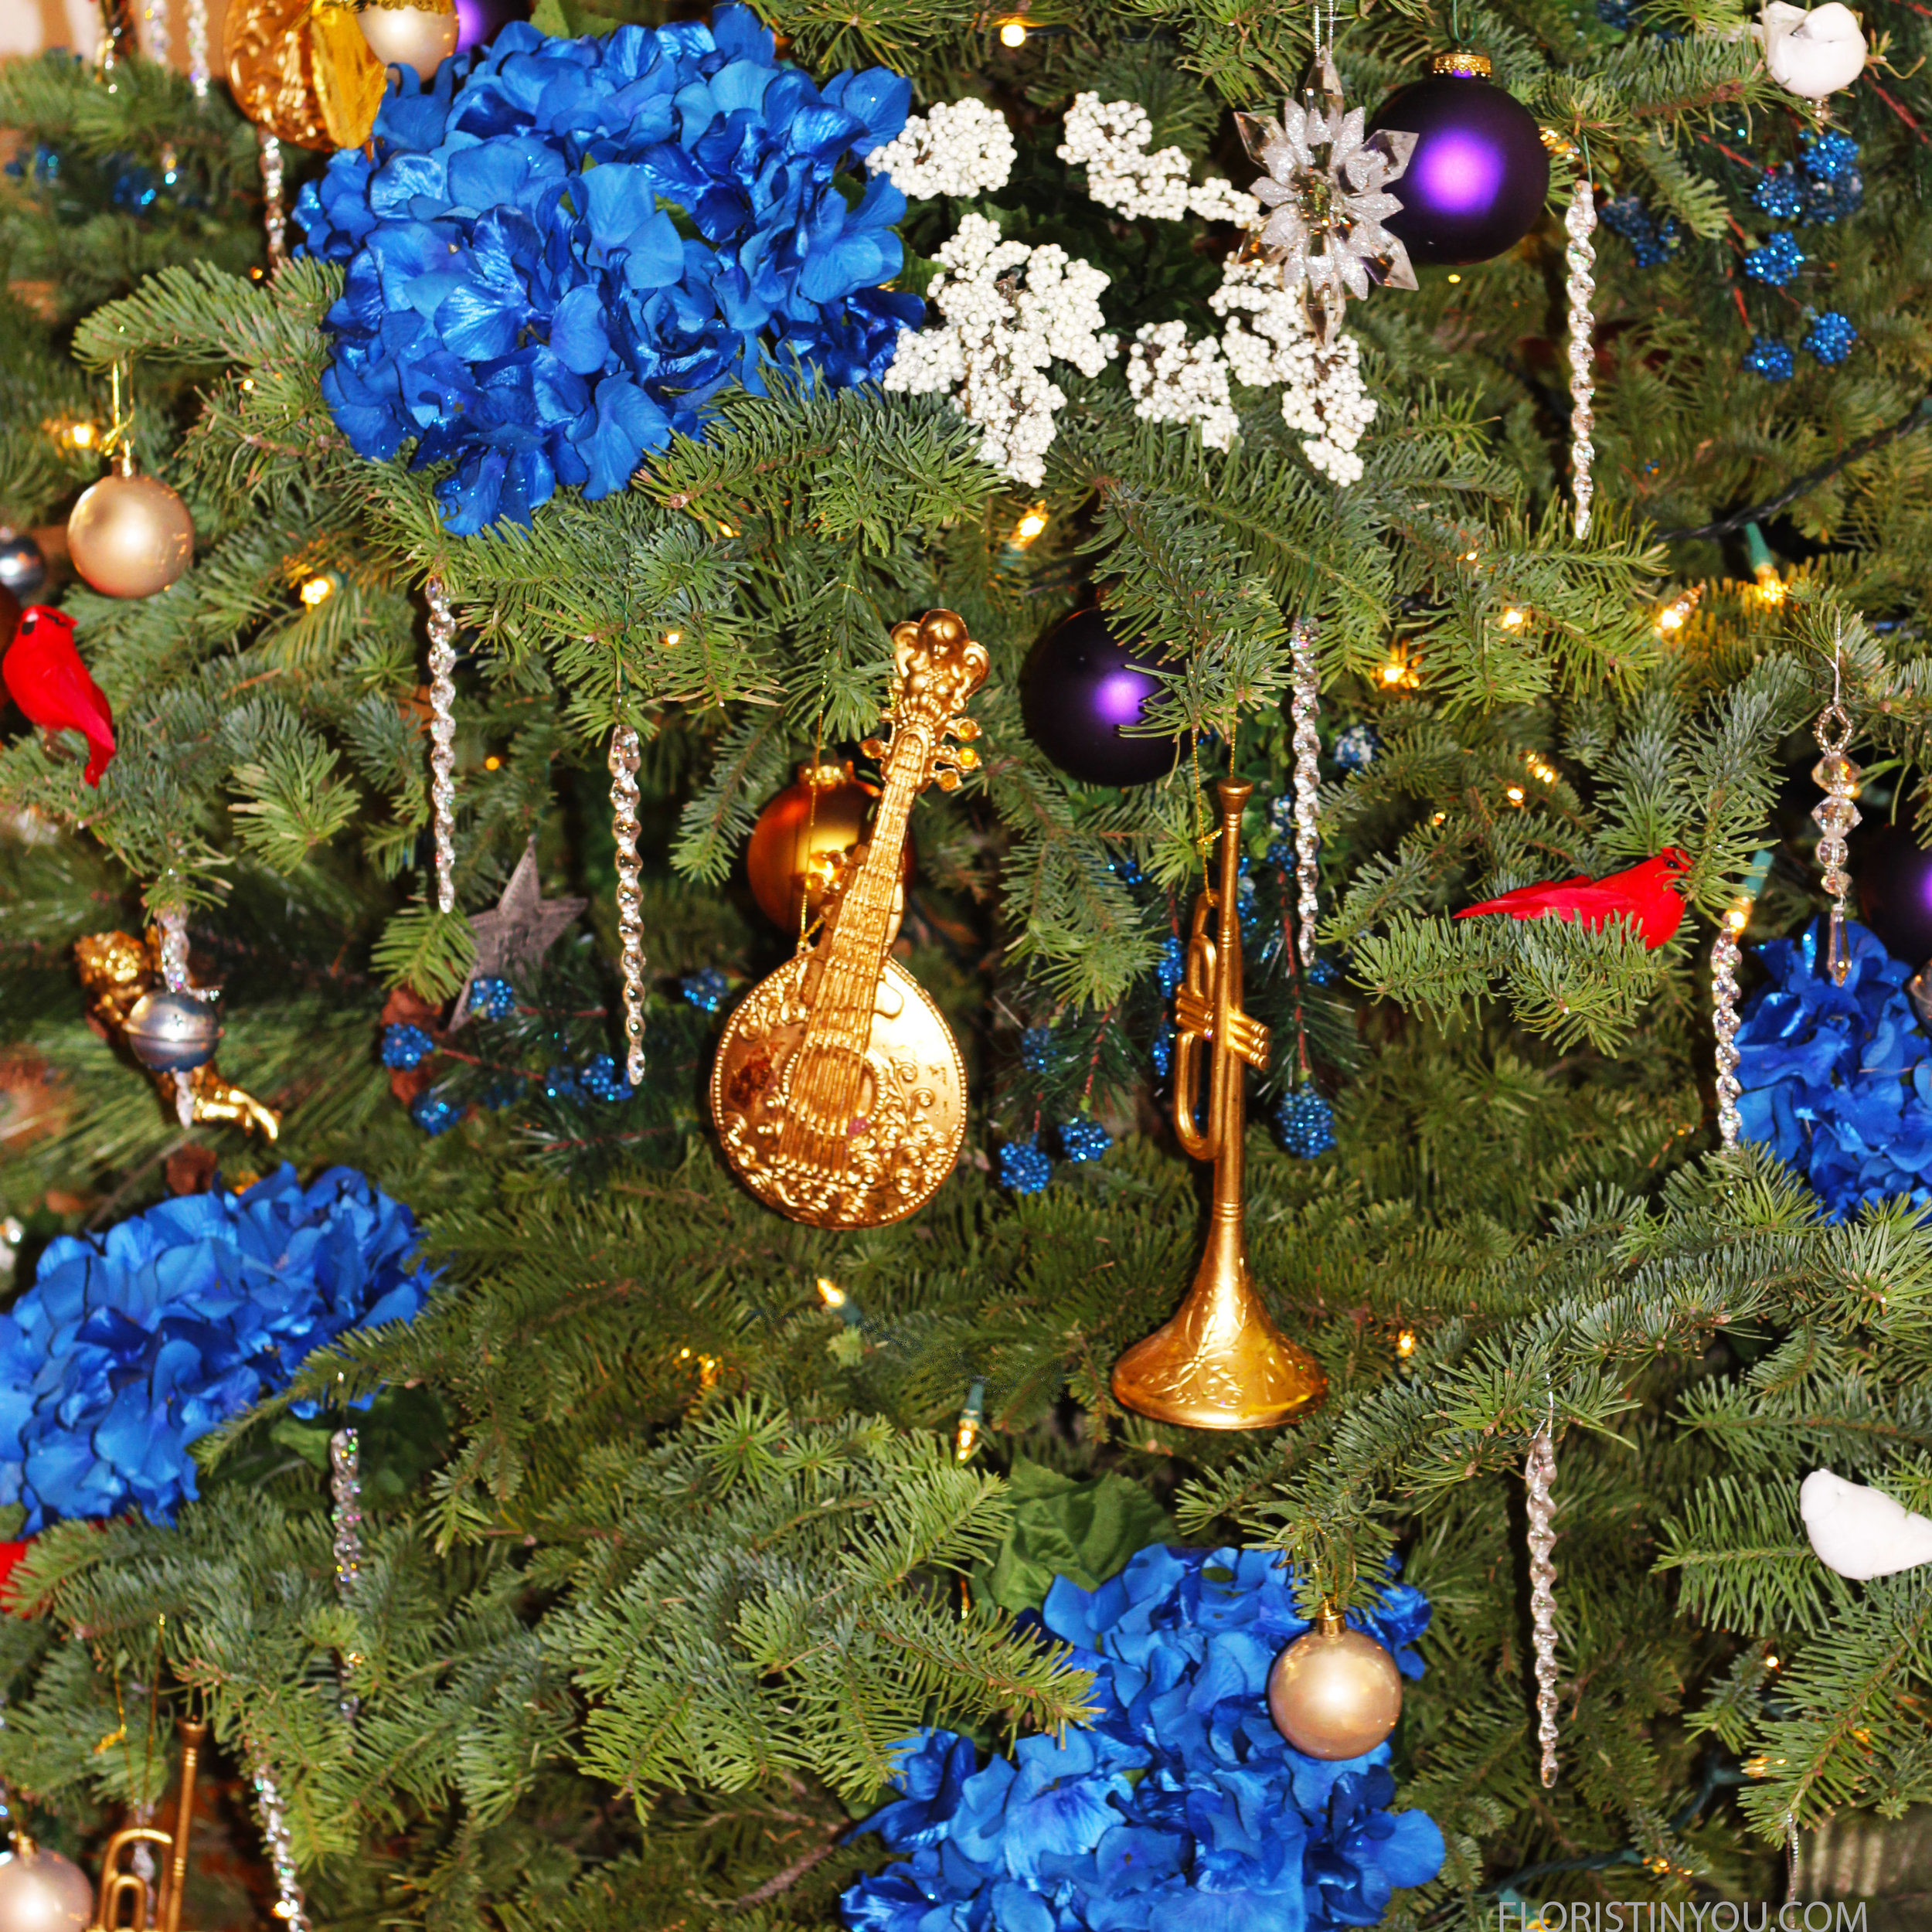 """How to Decorate your Christmas Tree with Flowers                     Normal   0           false   false   false     EN-US   JA   X-NONE                                                                                                                                                                                                                                                                                                                                                                              /* Style Definitions */ table.MsoNormalTable {mso-style-name:""""Table Normal""""; mso-tstyle-rowband-size:0; mso-tstyle-colband-size:0; mso-style-noshow:yes; mso-style-priority:99; mso-style-parent:""""""""; mso-padding-alt:0in 5.4pt 0in 5.4pt; mso-para-margin:0in; mso-para-margin-bottom:.0001pt; mso-pagination:widow-orphan; font-size:12.0pt; font-family:Cambria; mso-ascii-font-family:Cambria; mso-ascii-theme-font:minor-latin; mso-hansi-font-family:Cambria; mso-hansi-theme-font:minor-latin;}"""